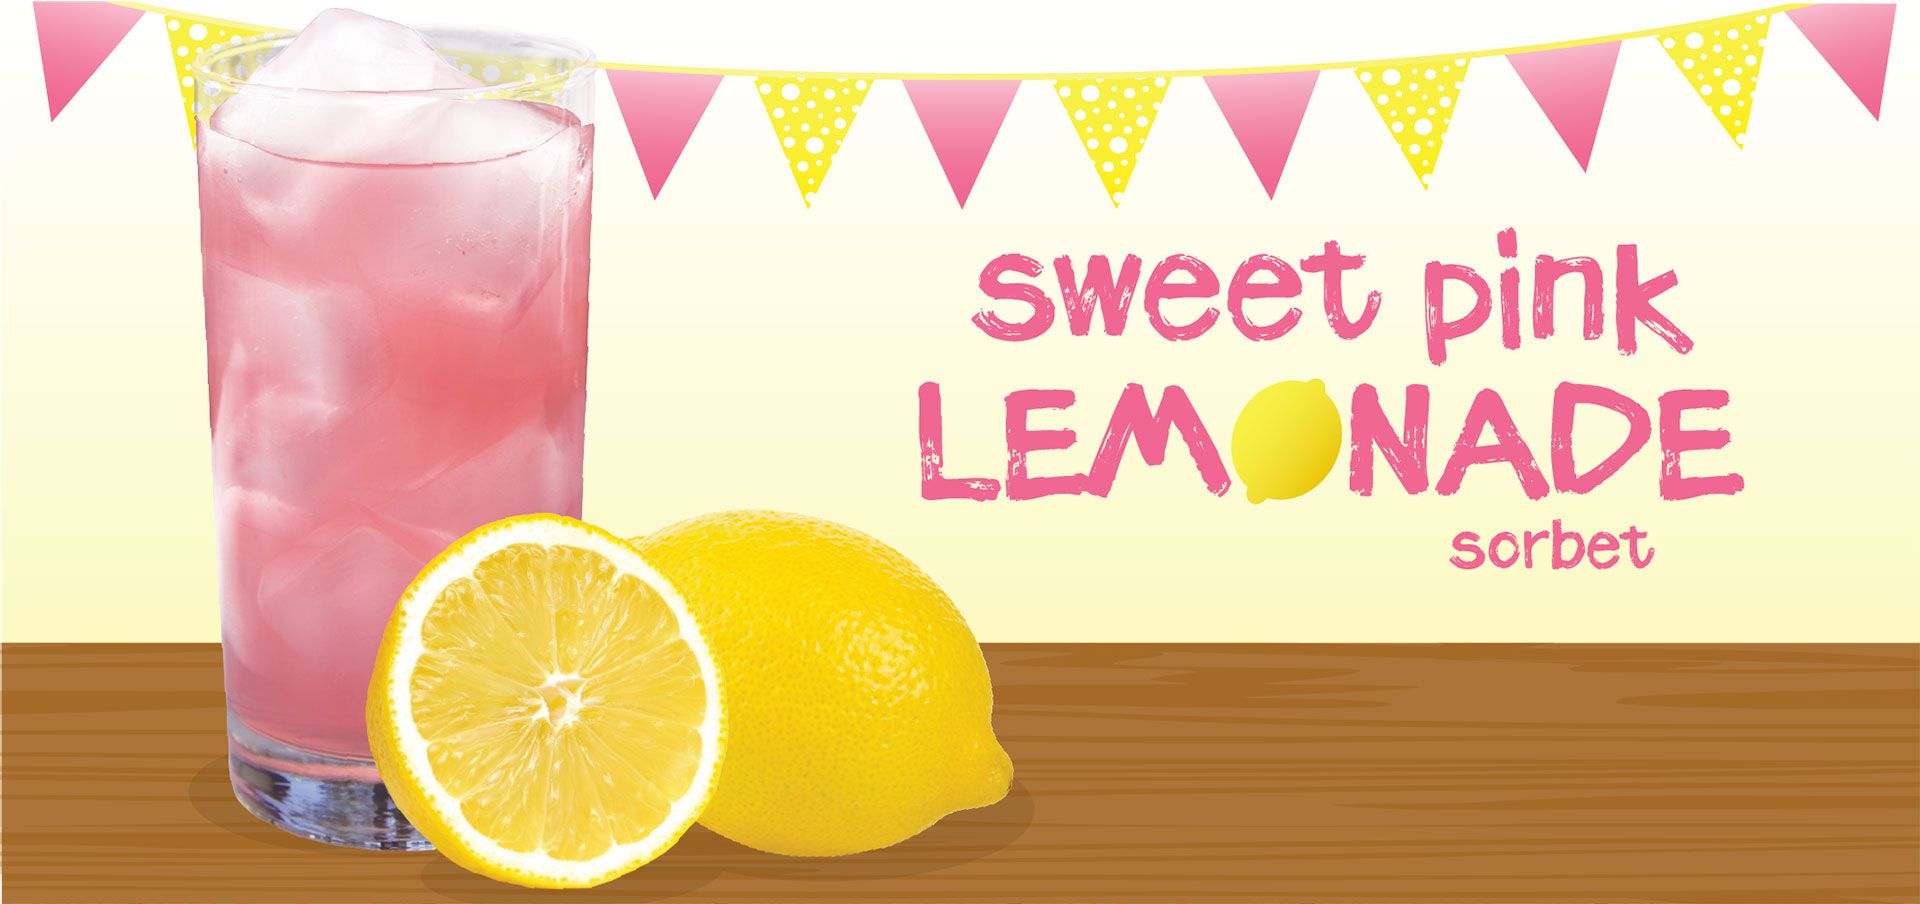 sweet pink lemonade sorbet label image